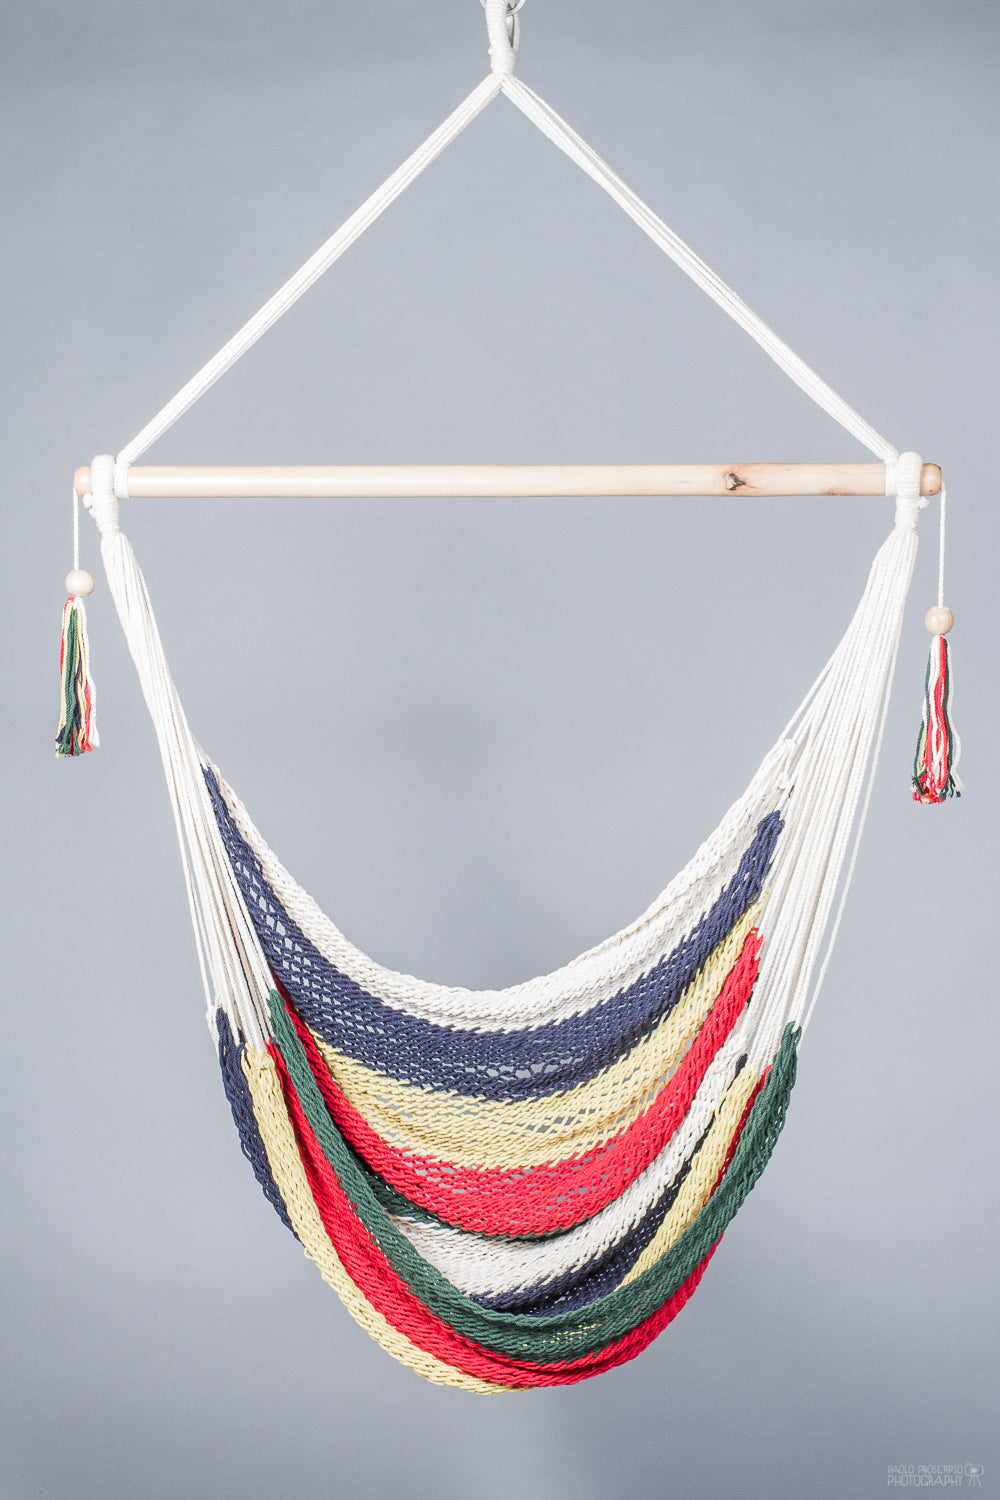 hammock chair of different colors. Grey background